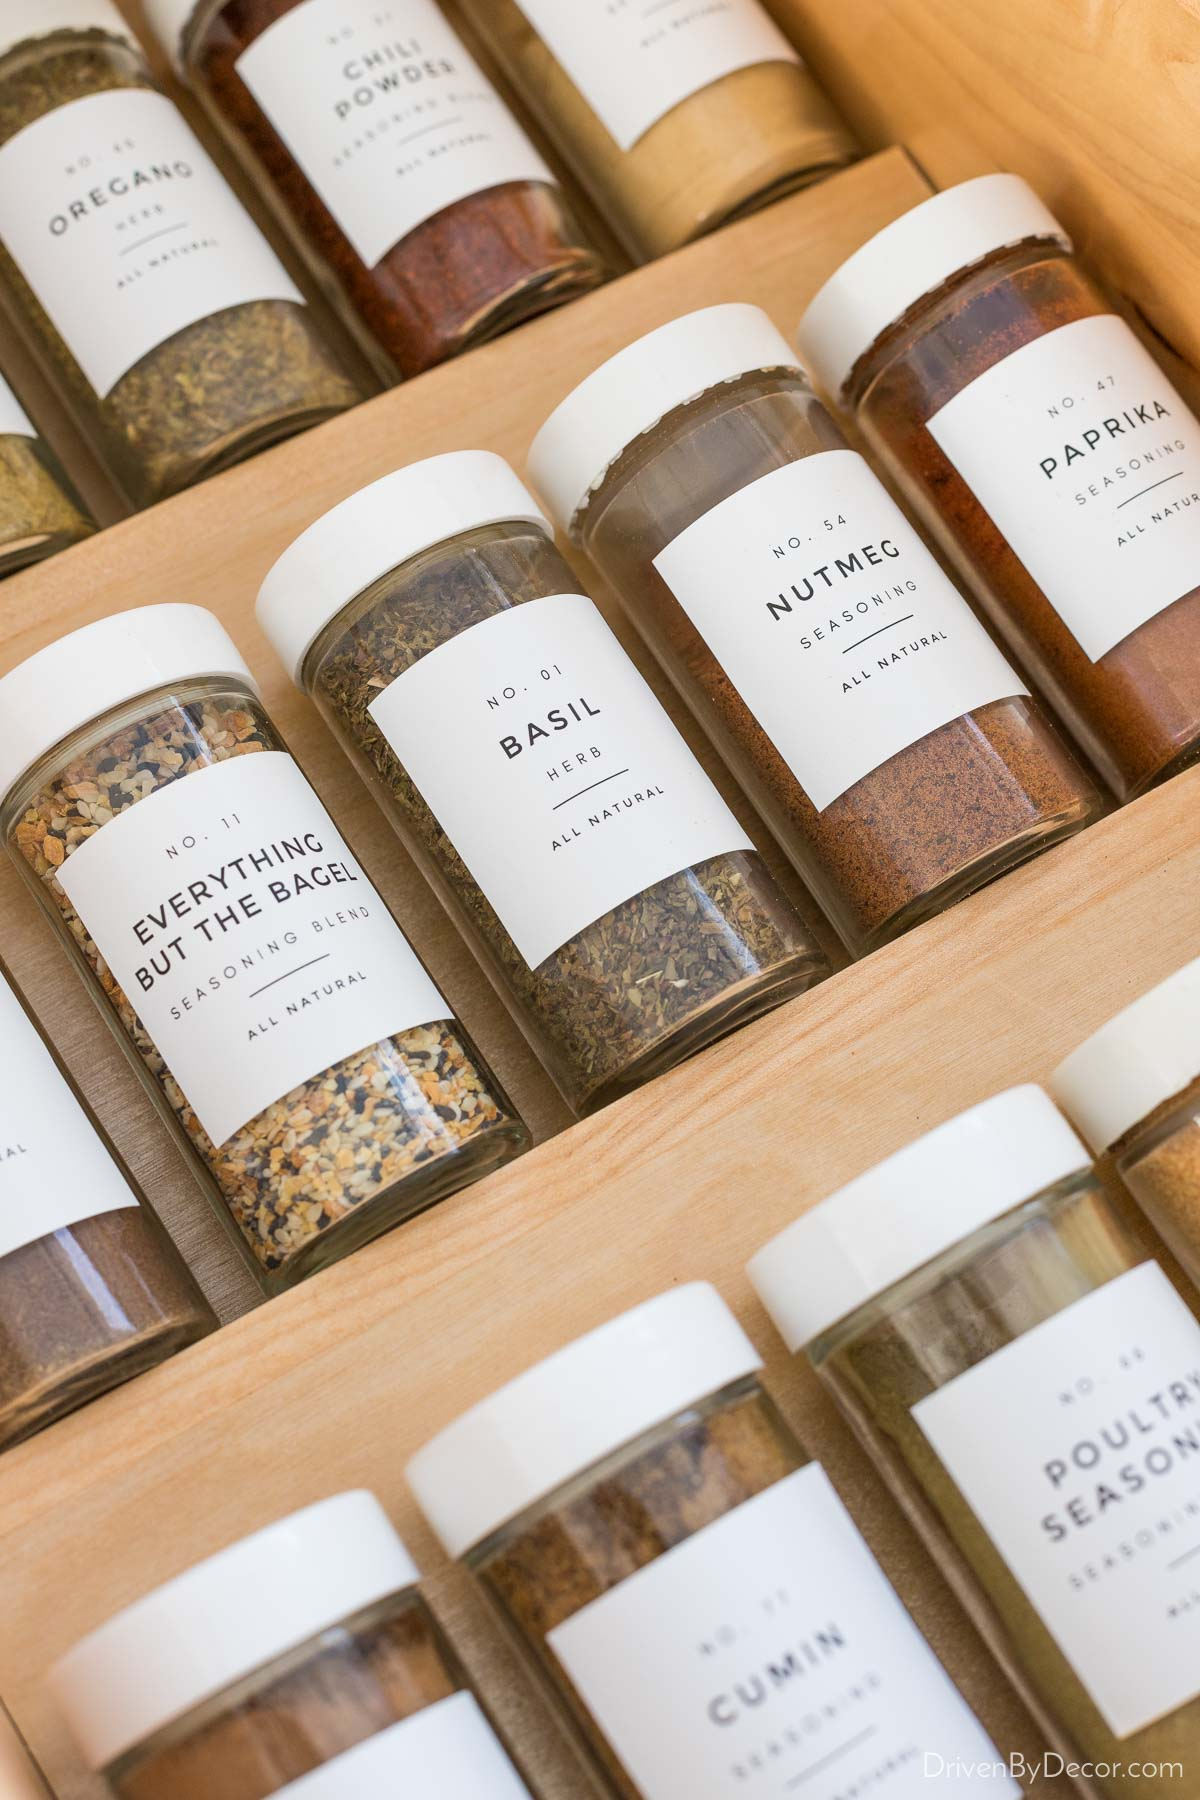 Spice jars with simple matching labels helped organize them in our kitchen drawers!